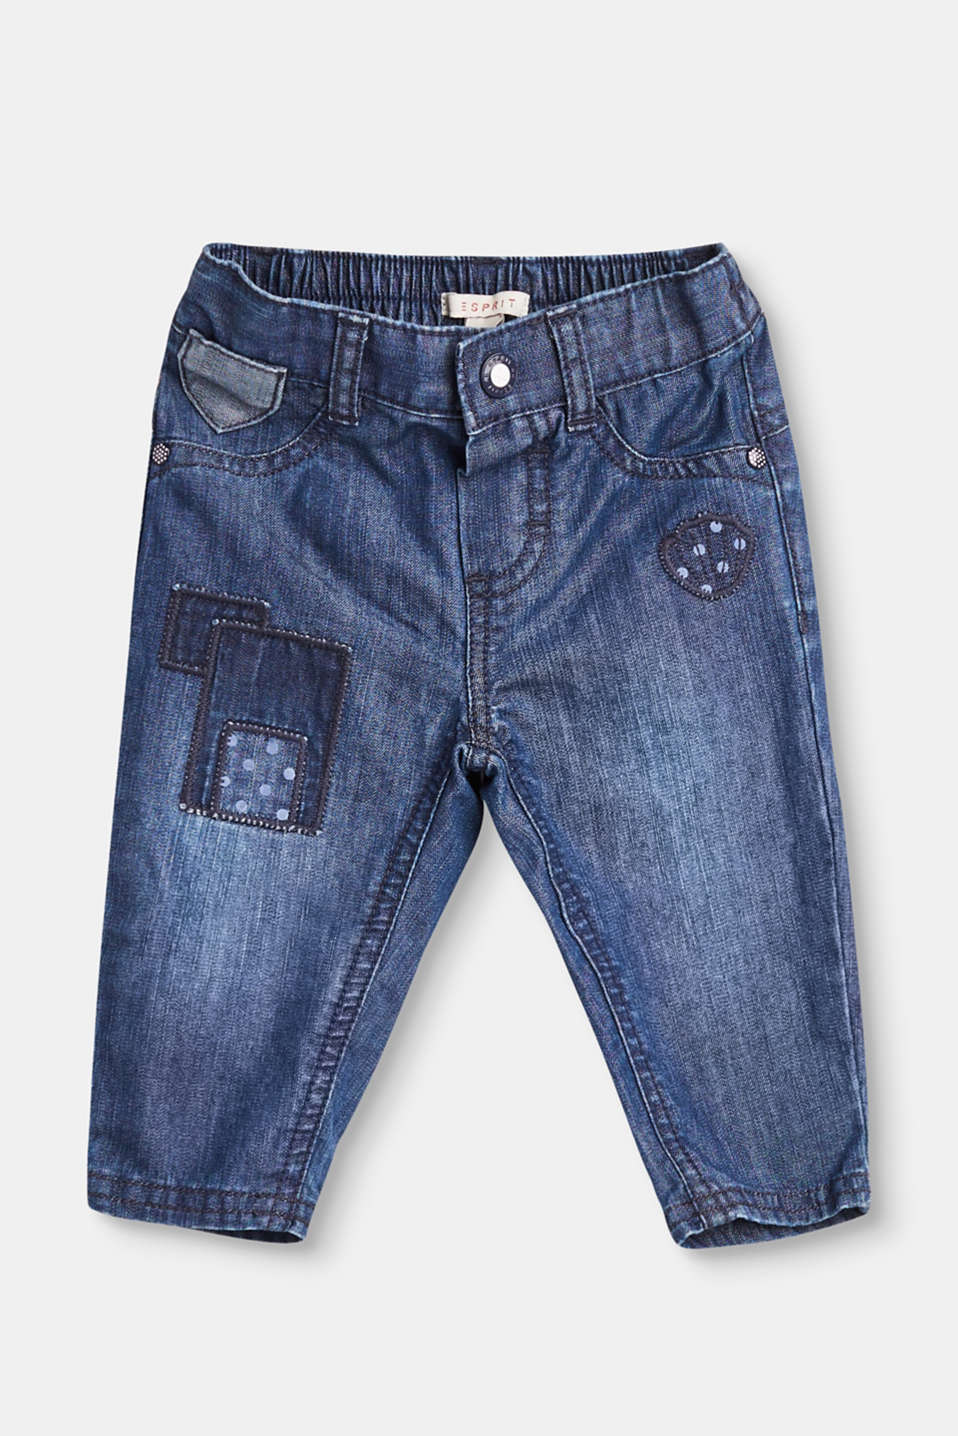 Cute in the extreme and comfortable too, these appliquéd jeans are made from comfy, soft denim.